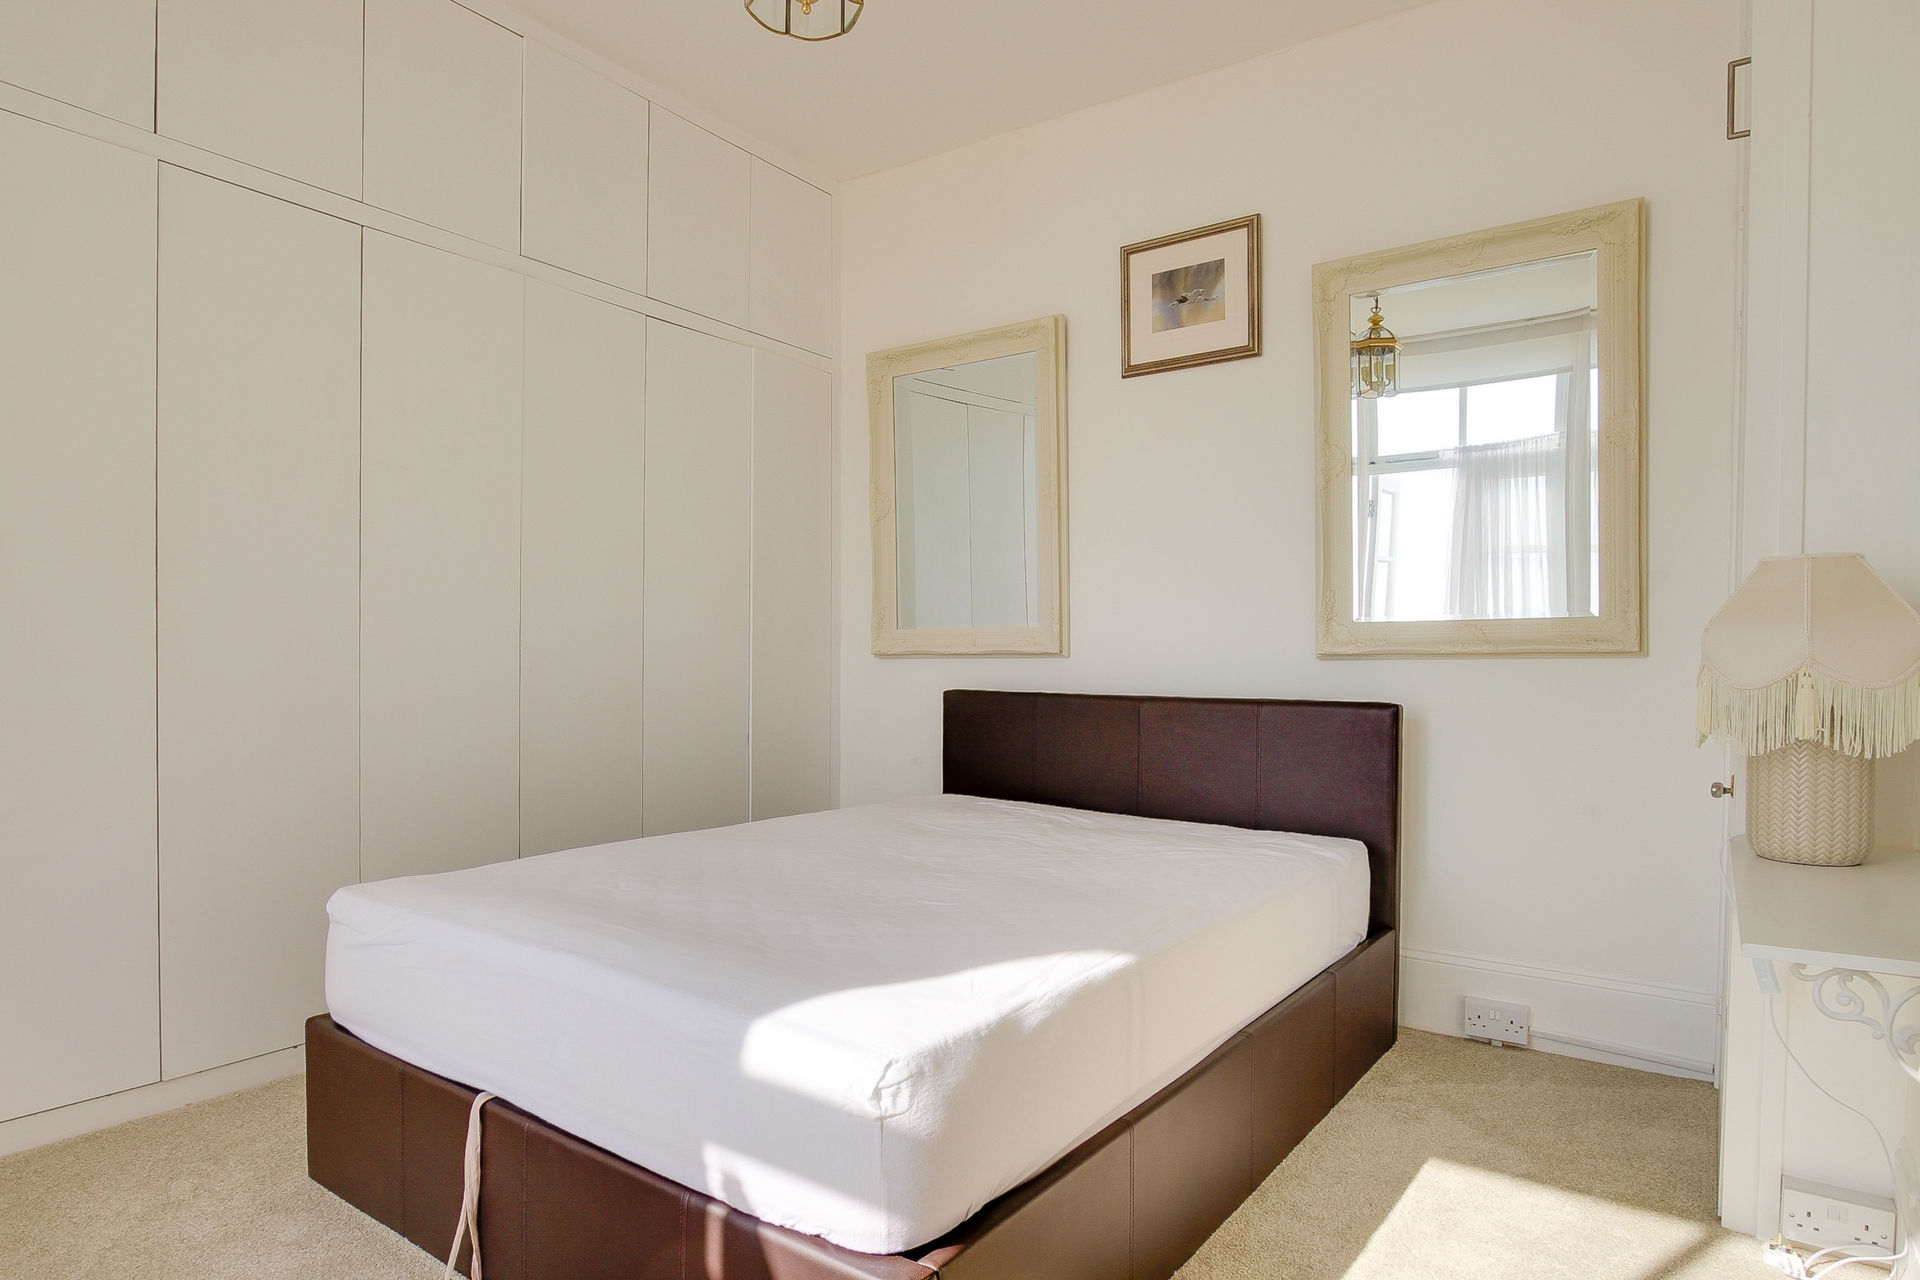 1 bed flat to rent in The Parade, Broadstairs, CT10 1